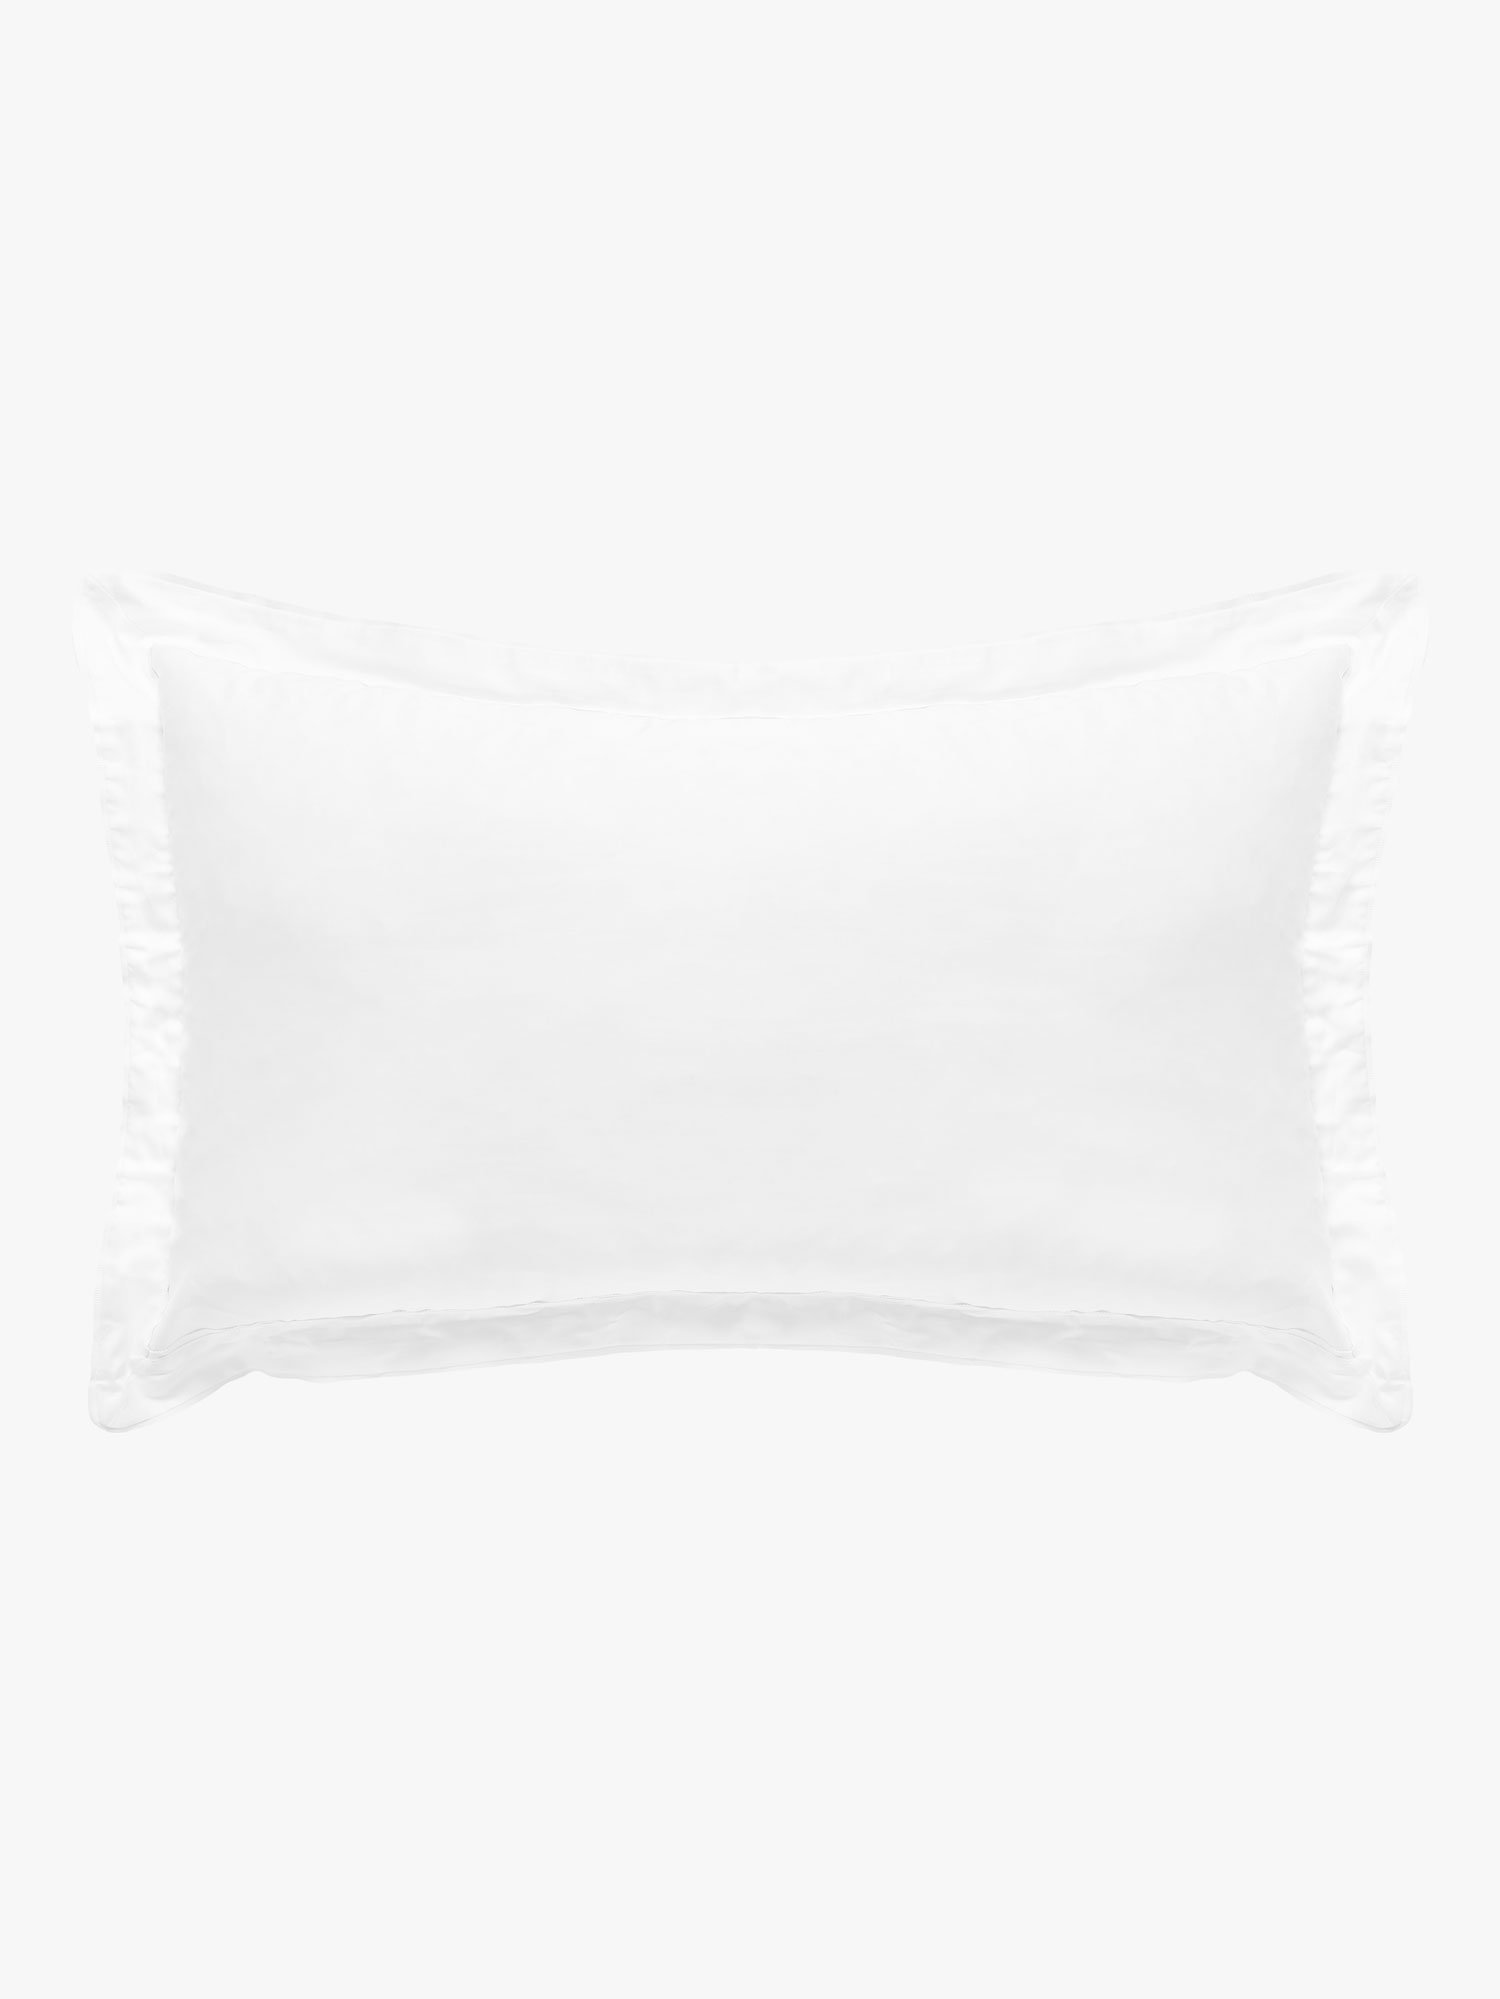 Grosgrain White Pillowcases Pillowcase L&M Home Tailored (Pair)